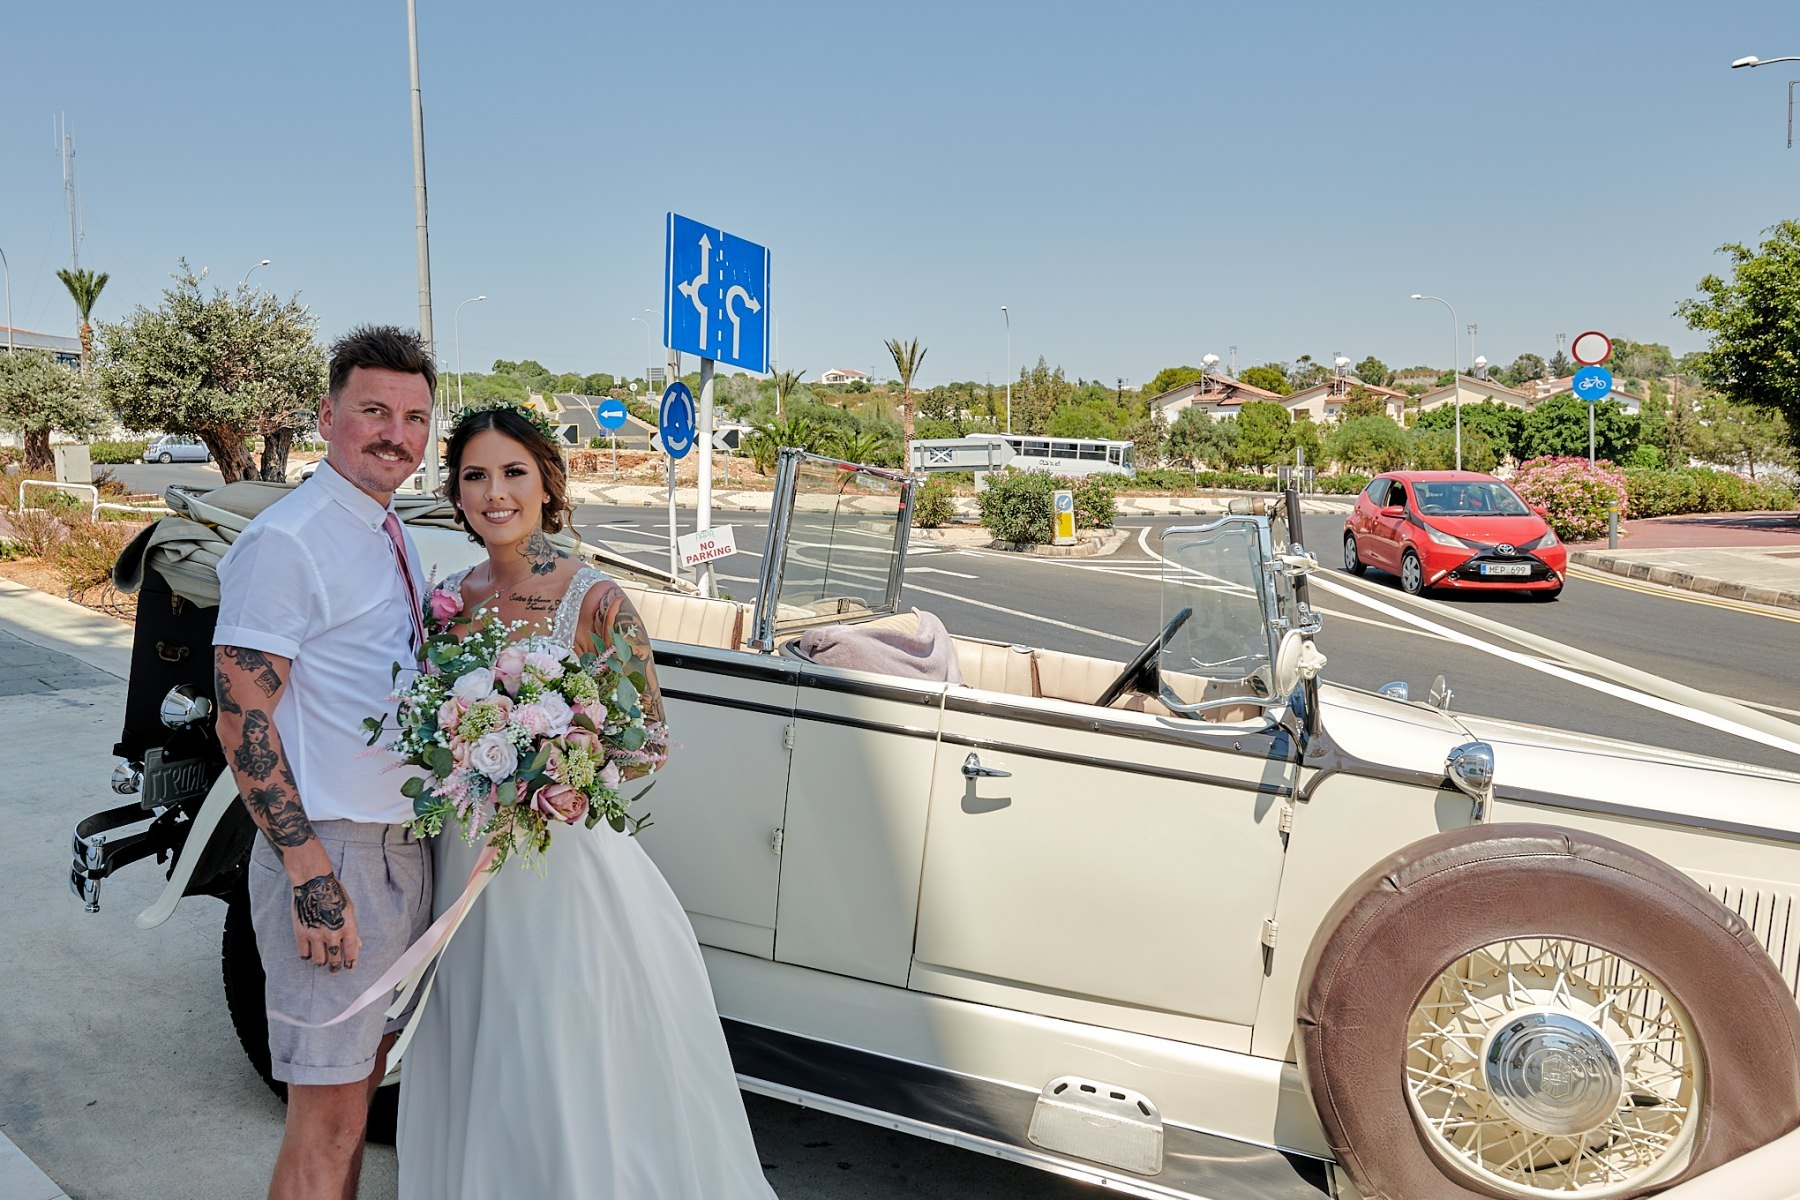 The elegant bohemian wedding of Abbie & Lee.  Getting ready shots at Napa suites in, Ayia Napa, and Villa Cynthia in Protaras.  The wedding  ceremony held at Sirens beach in Ayia Thekla and the wedding reception at.  Polyxenia Isaak in Protaras.  We had an on loaction trip out to Cape Greco and Blood Brothers tattoo parlour in Ayia Napa..  Wedding photograpy in Cyprus by Richard King  http://www.thecyprusweddingphotographer.com